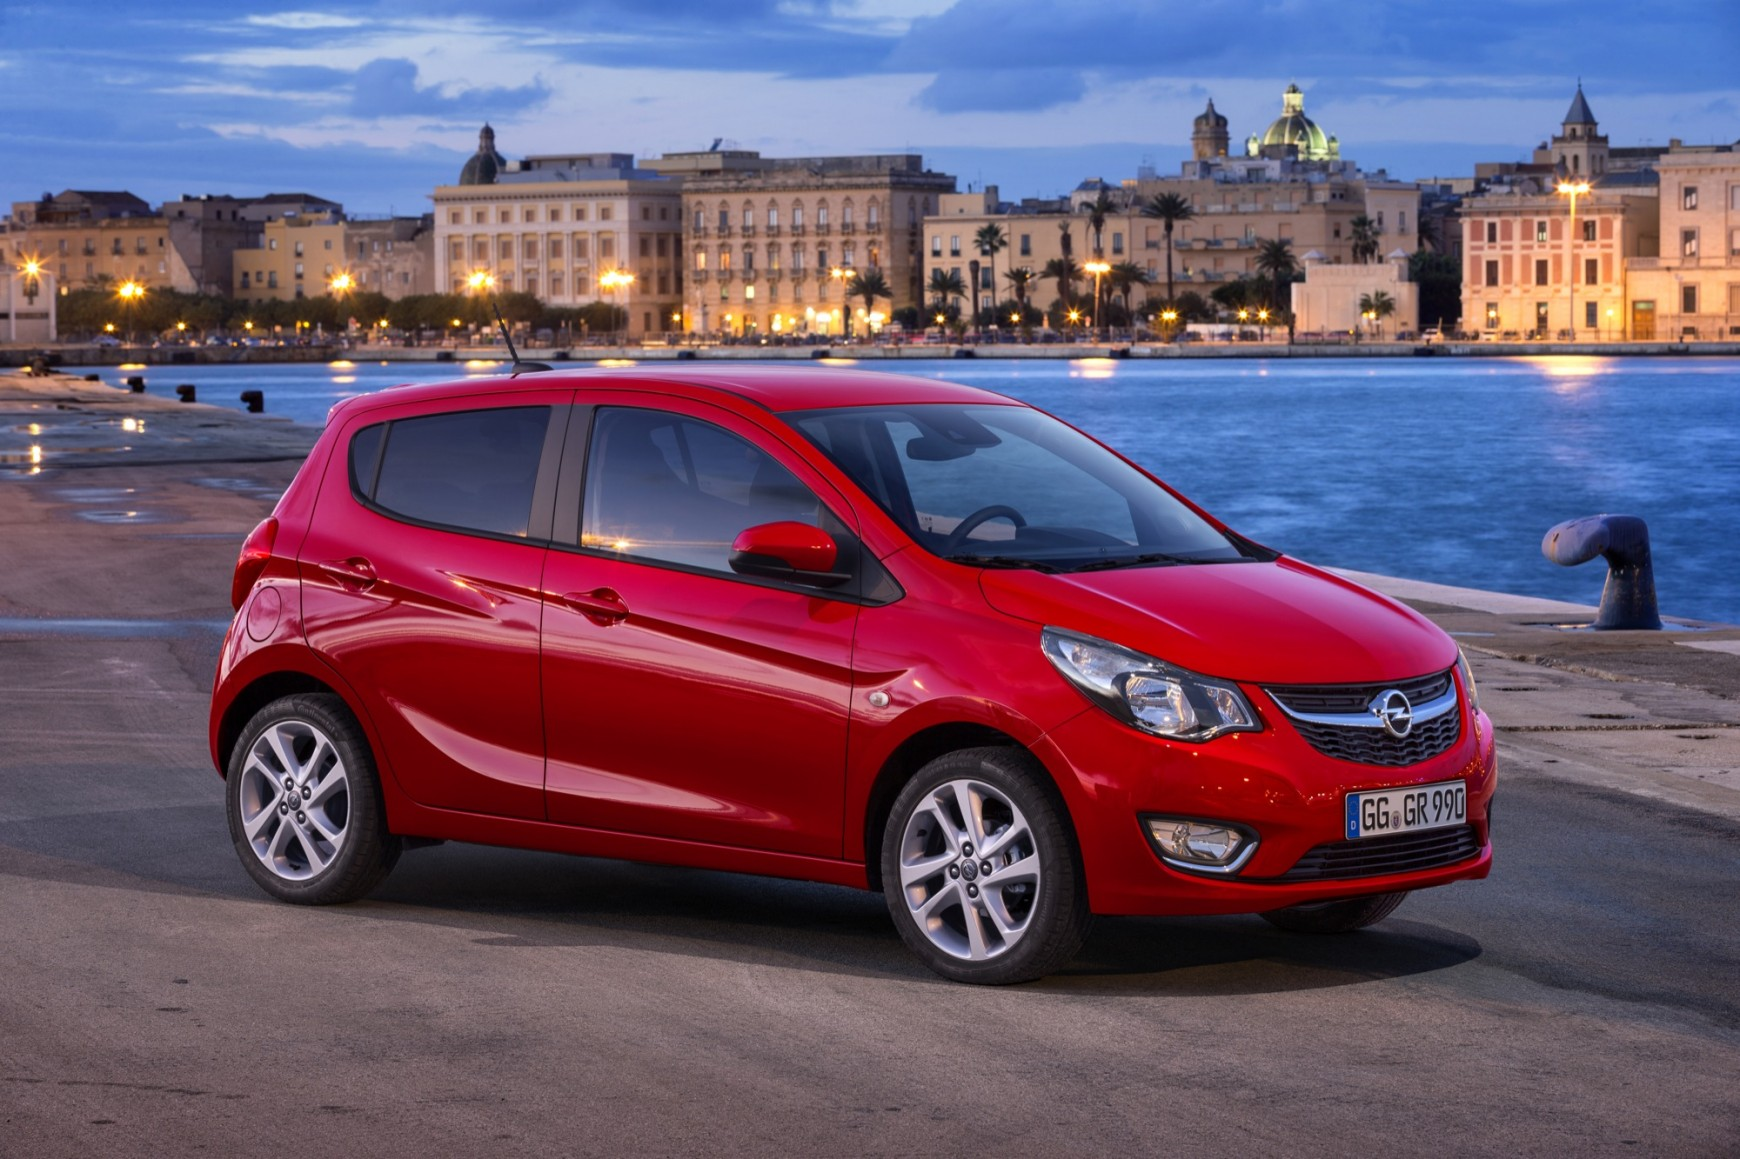 52 Best Review Nouvelle Opel Karl 2020 Photos for Nouvelle Opel Karl 2020